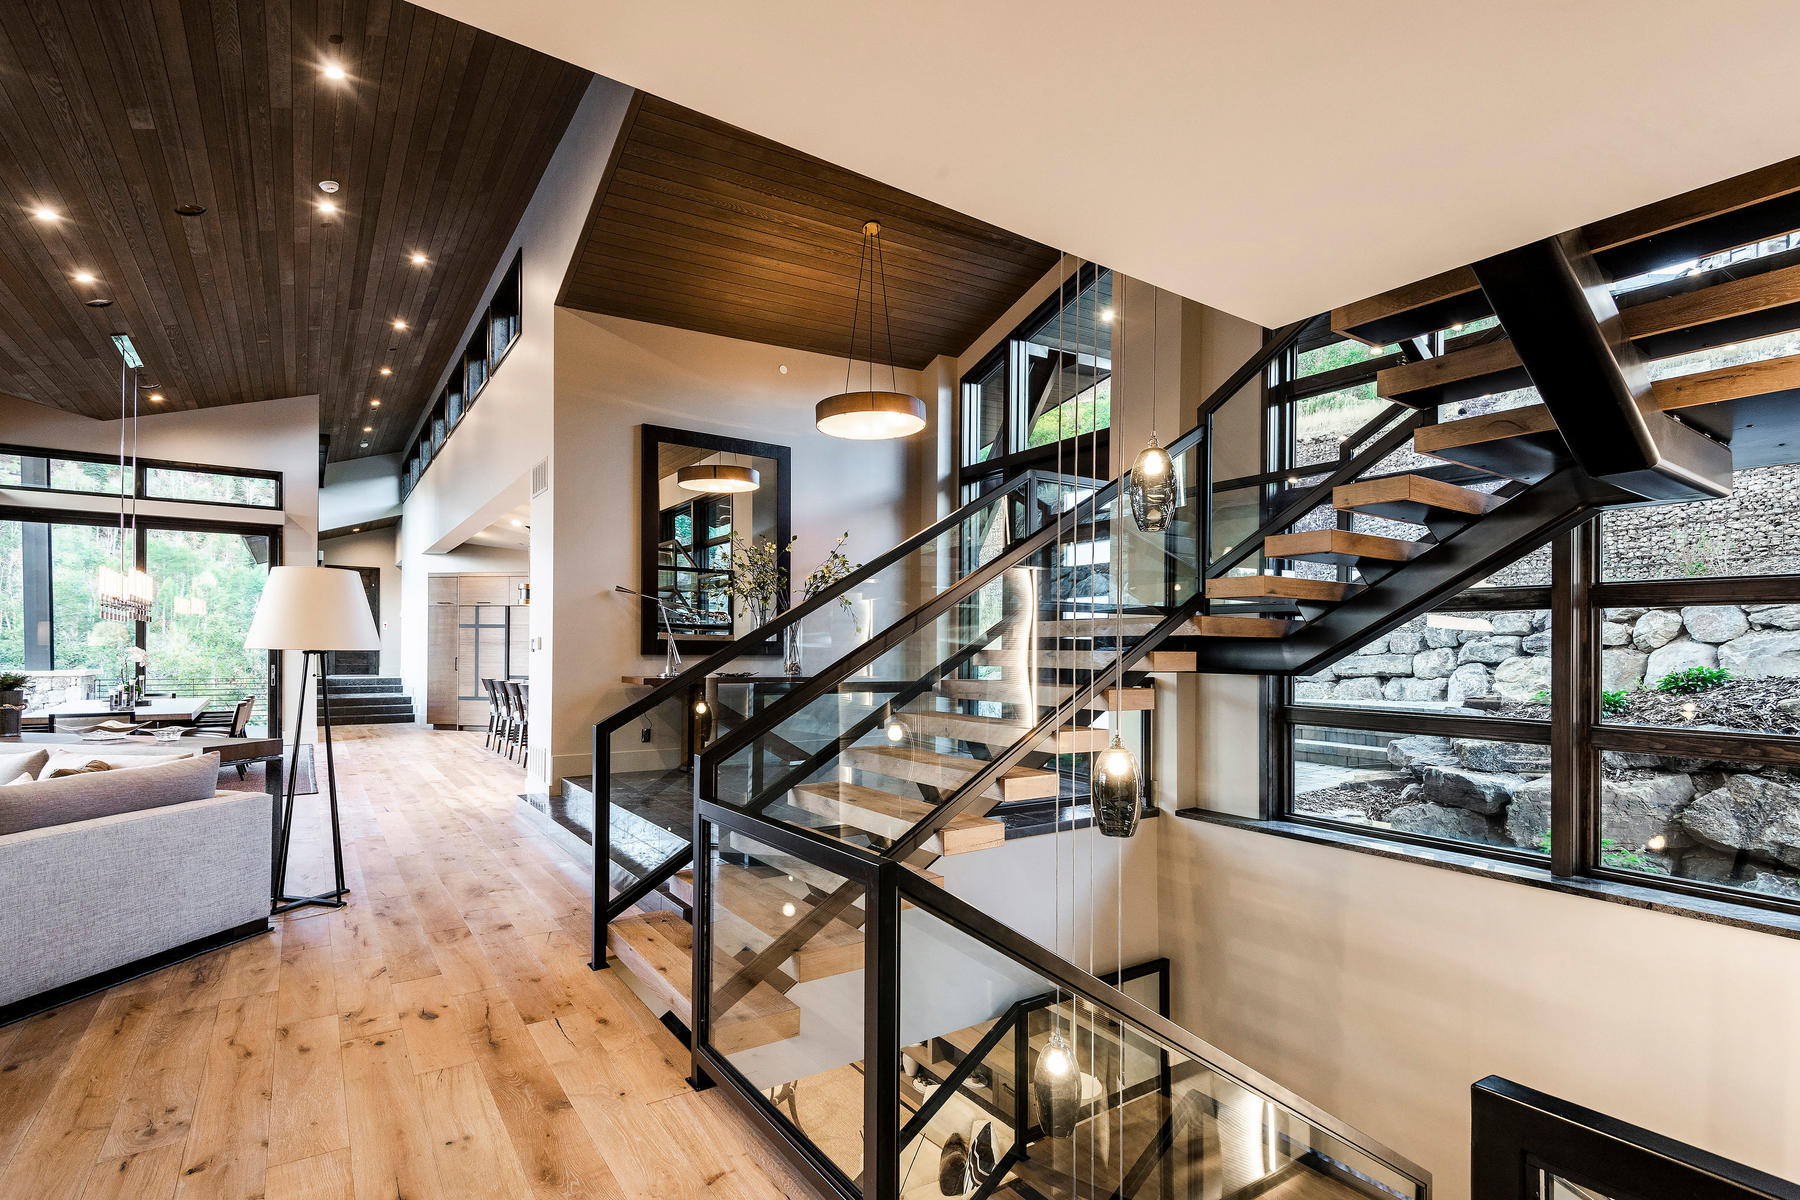 Additional photo for property listing at Stunning Ski-In Ski-Out New Construction with Panoramic Views 3007 Deer Crest Estates Park City, Utah 84060 United States